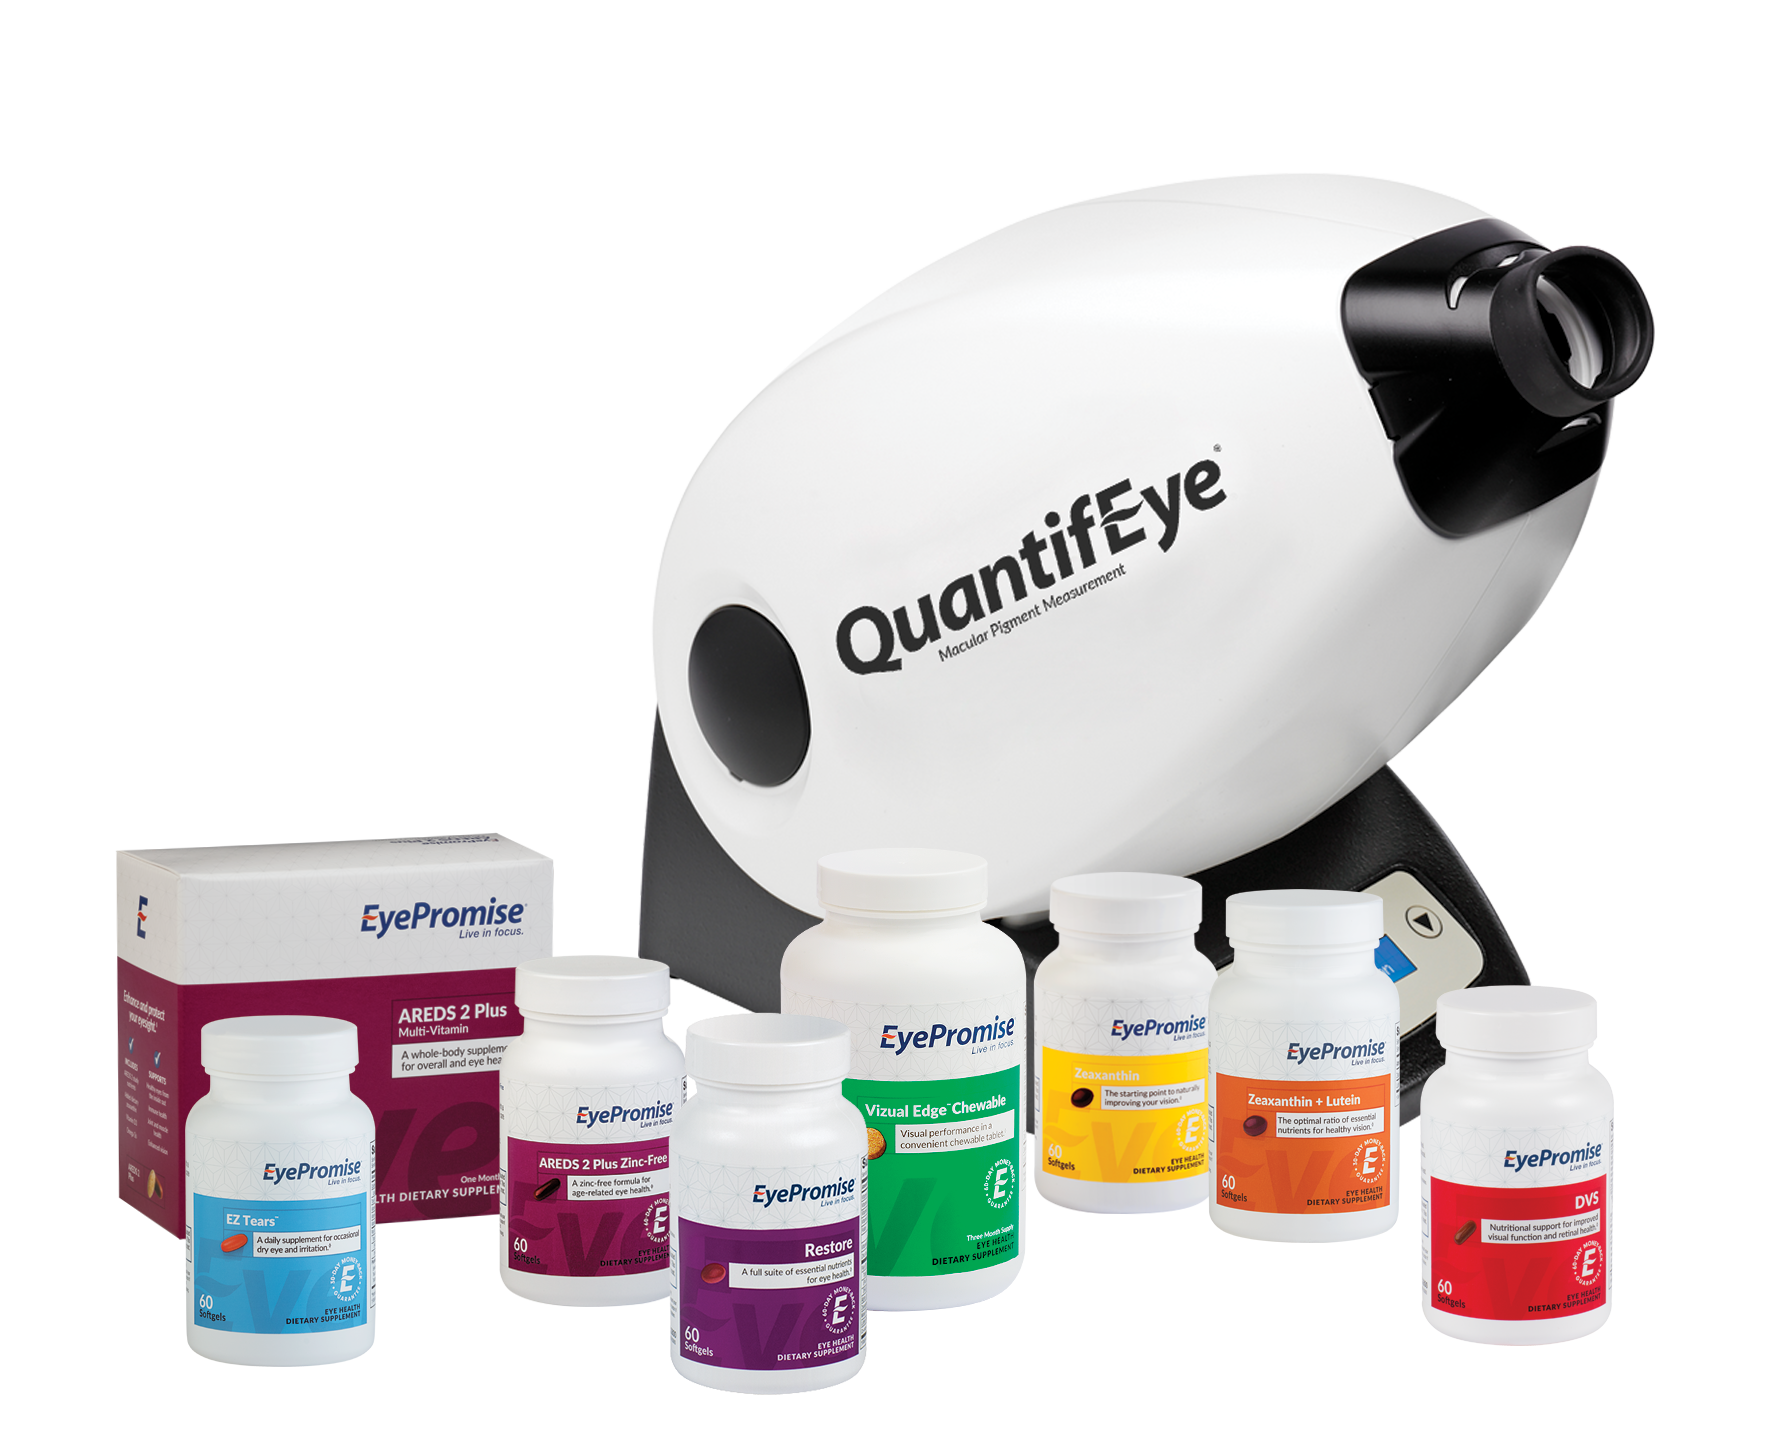 EyePromise product family and QuantifEye MPS II instrument.